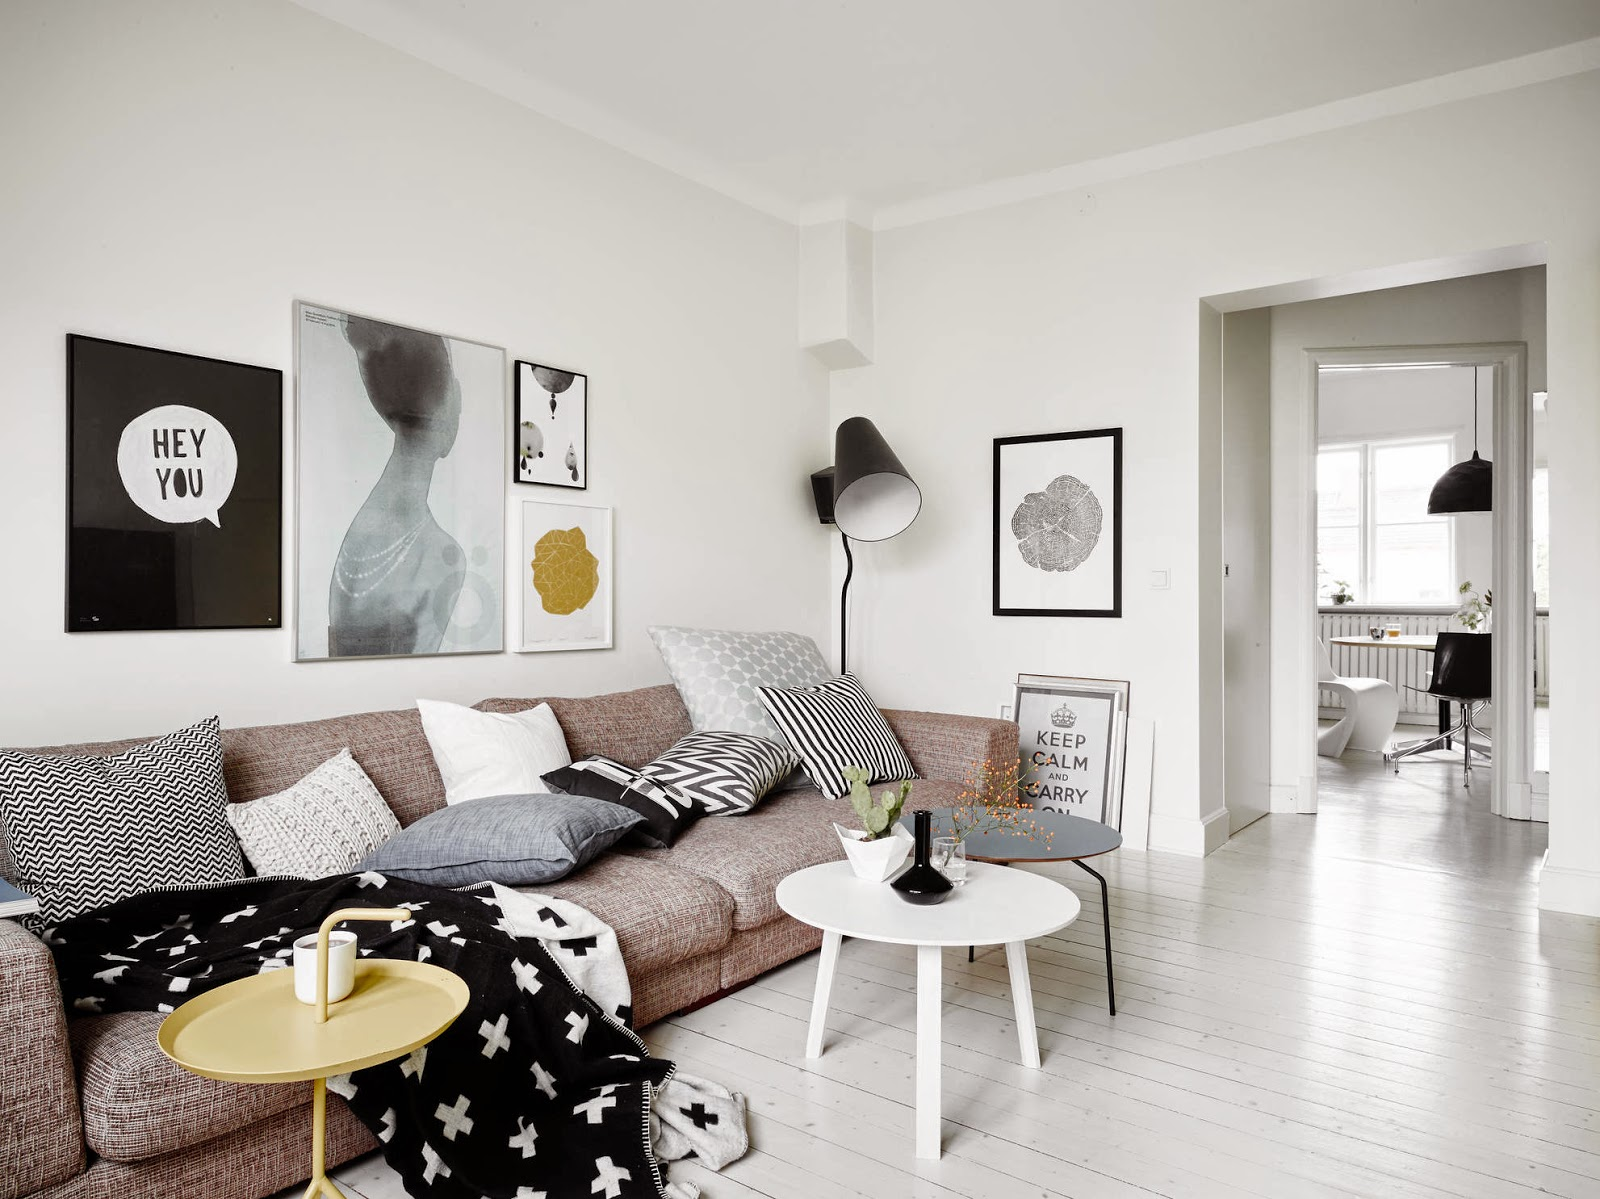 This Is Your Original White And Black Contemporary Scandinavian Home Tour.  White (or Light Wood) Floors And Walls. Black Accessories, A Yellow Accent  Colour ... Images